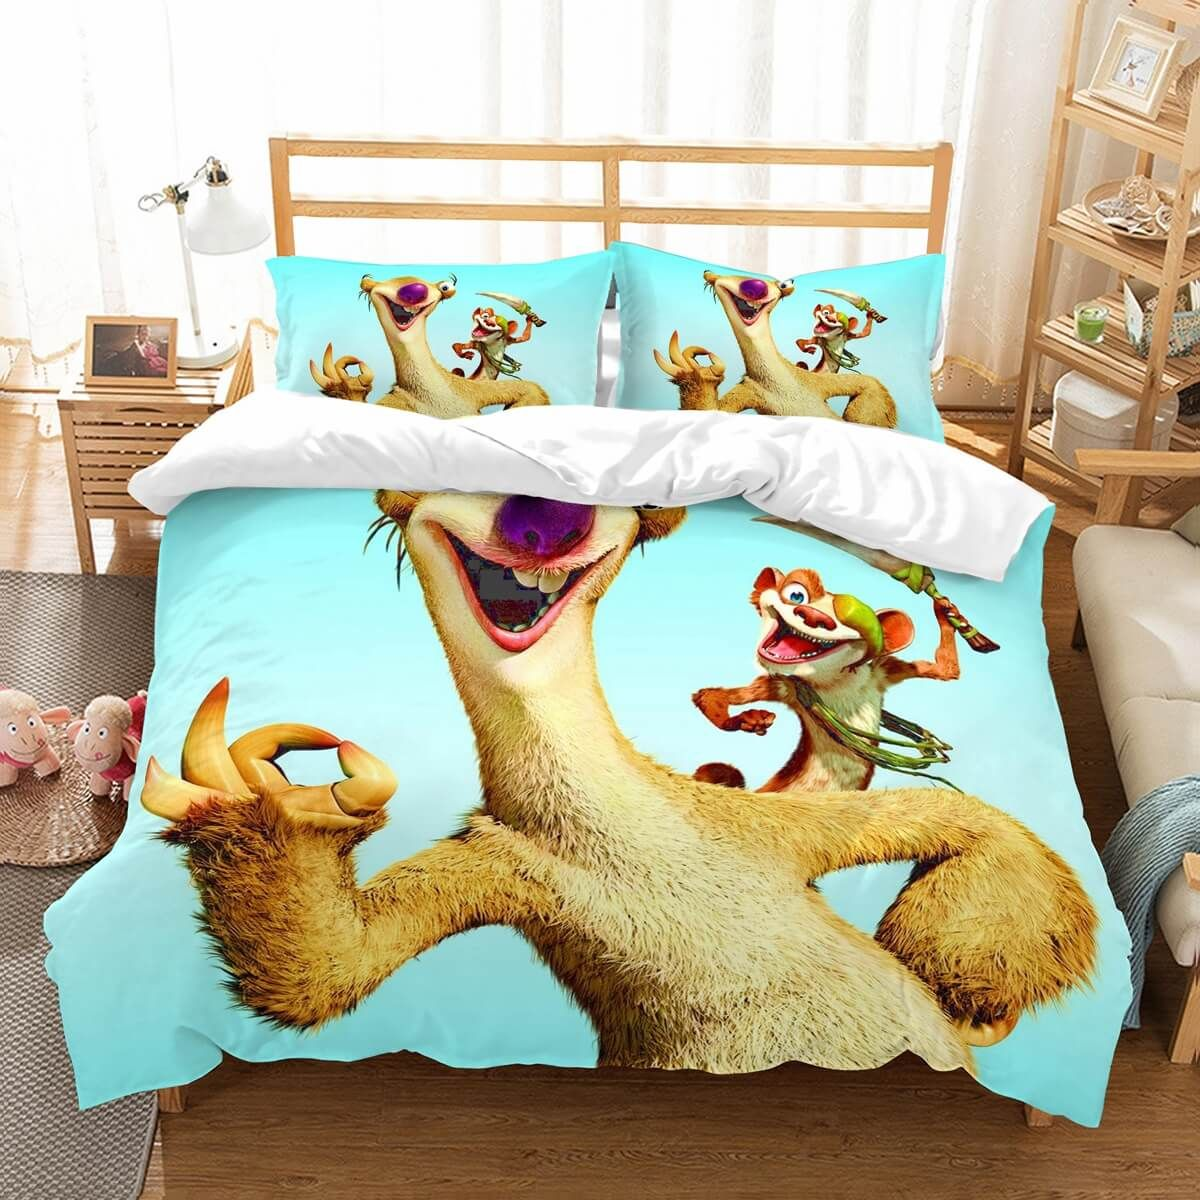 Customize Ice Age Bedding Set Duvet Cover Bedroom